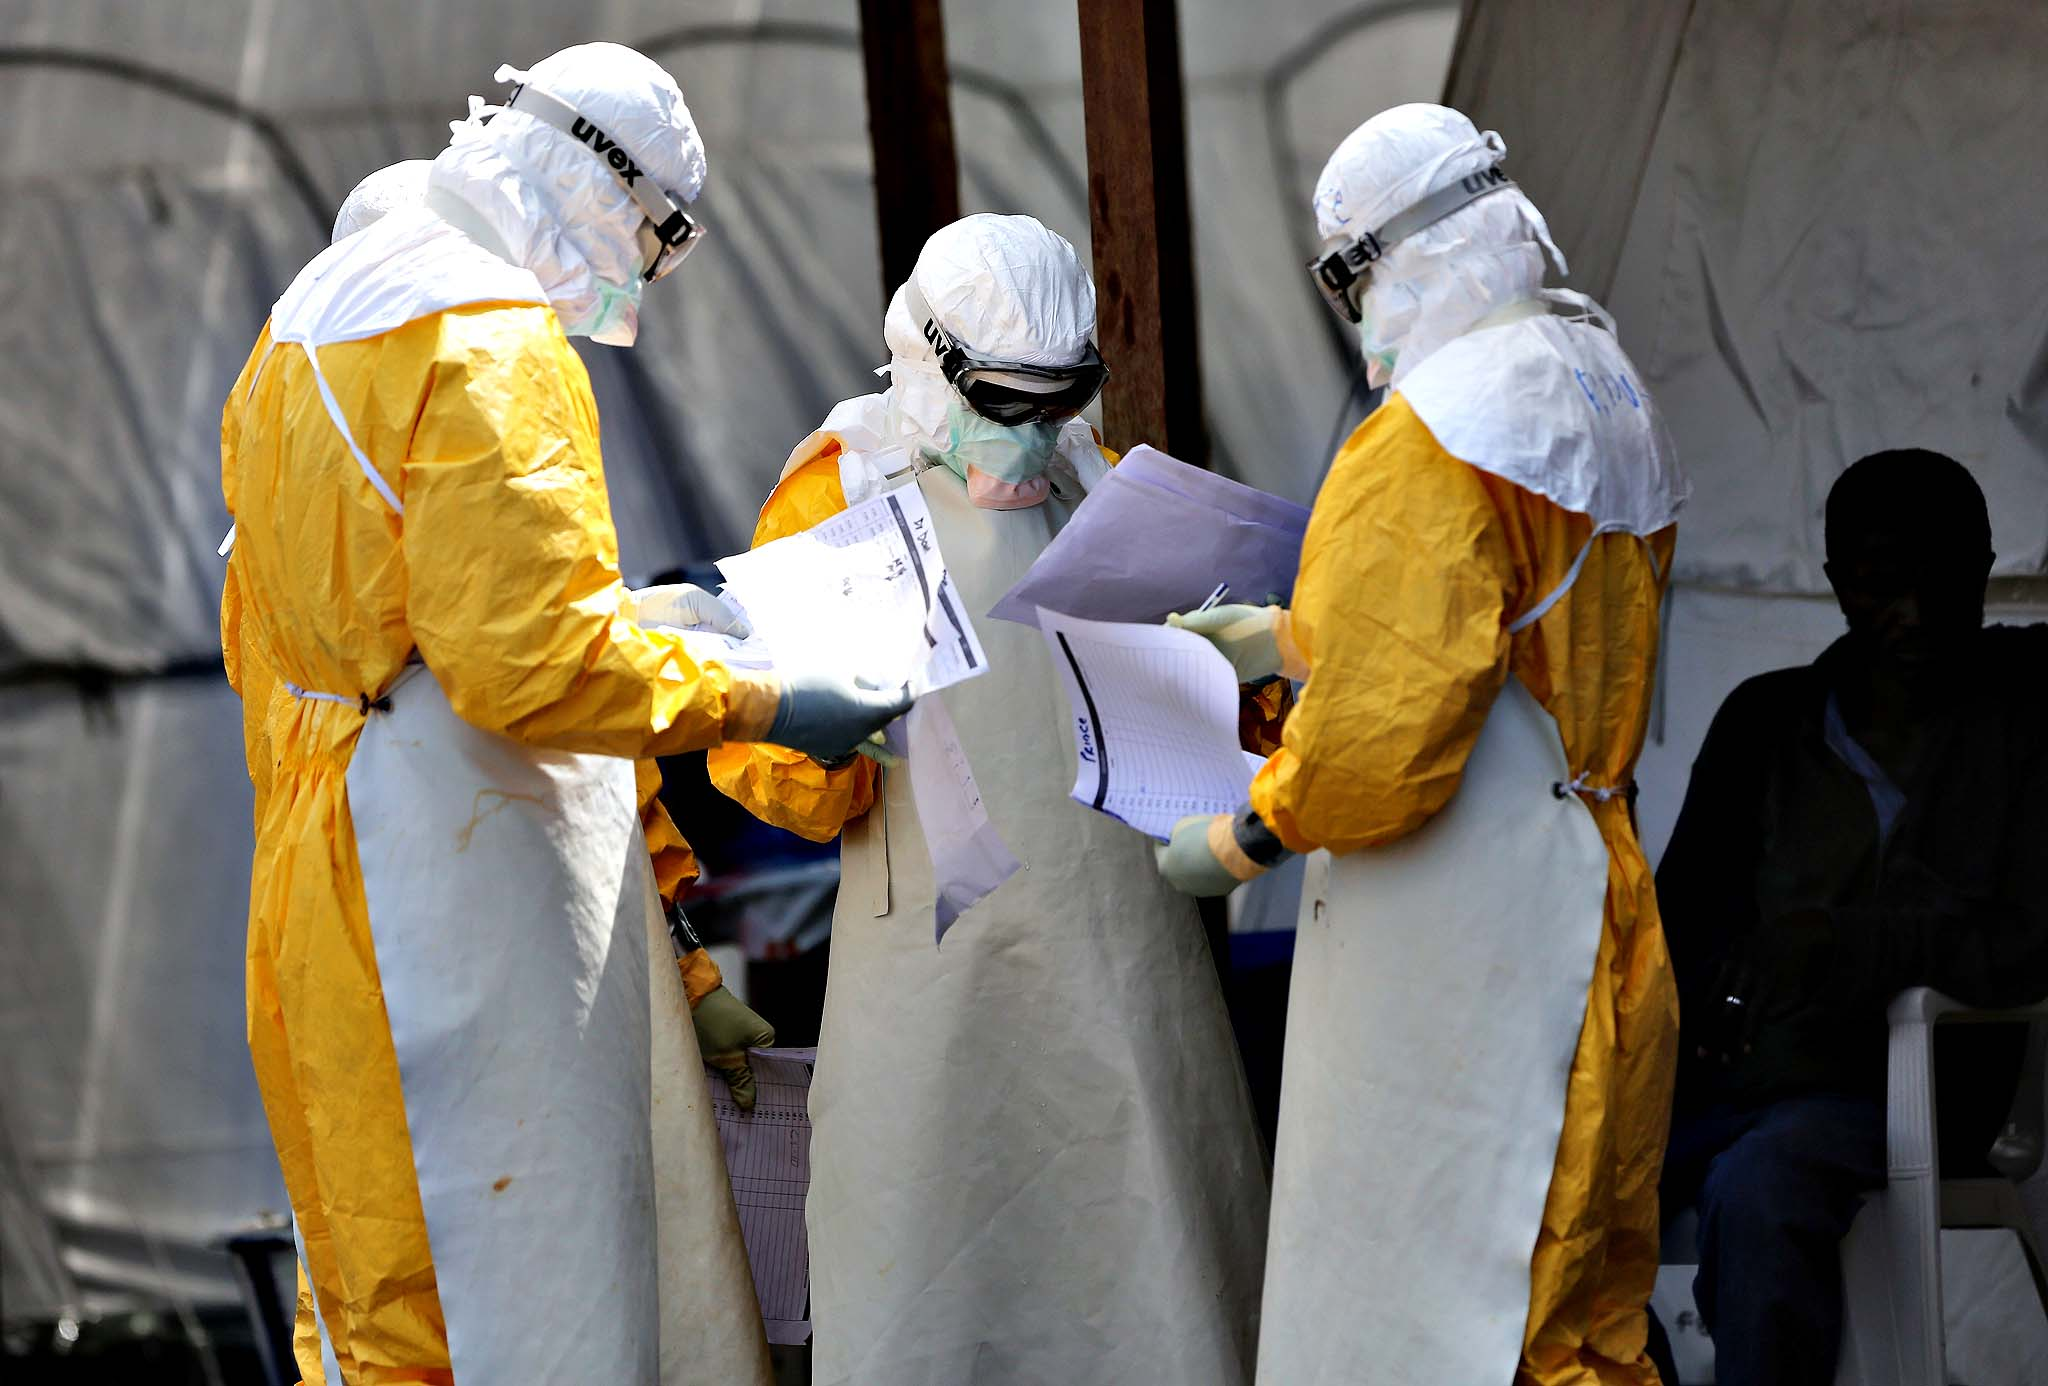 Health workers at Doctors Without Borders (MSF), work in the high-risk area of the ELWA 3 Ebola treatment center on October 16, 2014 in Paynesville, Liberia. The World Health Organization says that more than 4,500 people have died due to the Ebola epidemic in West Africa with a mortality rate for the disease at about 70 percent.